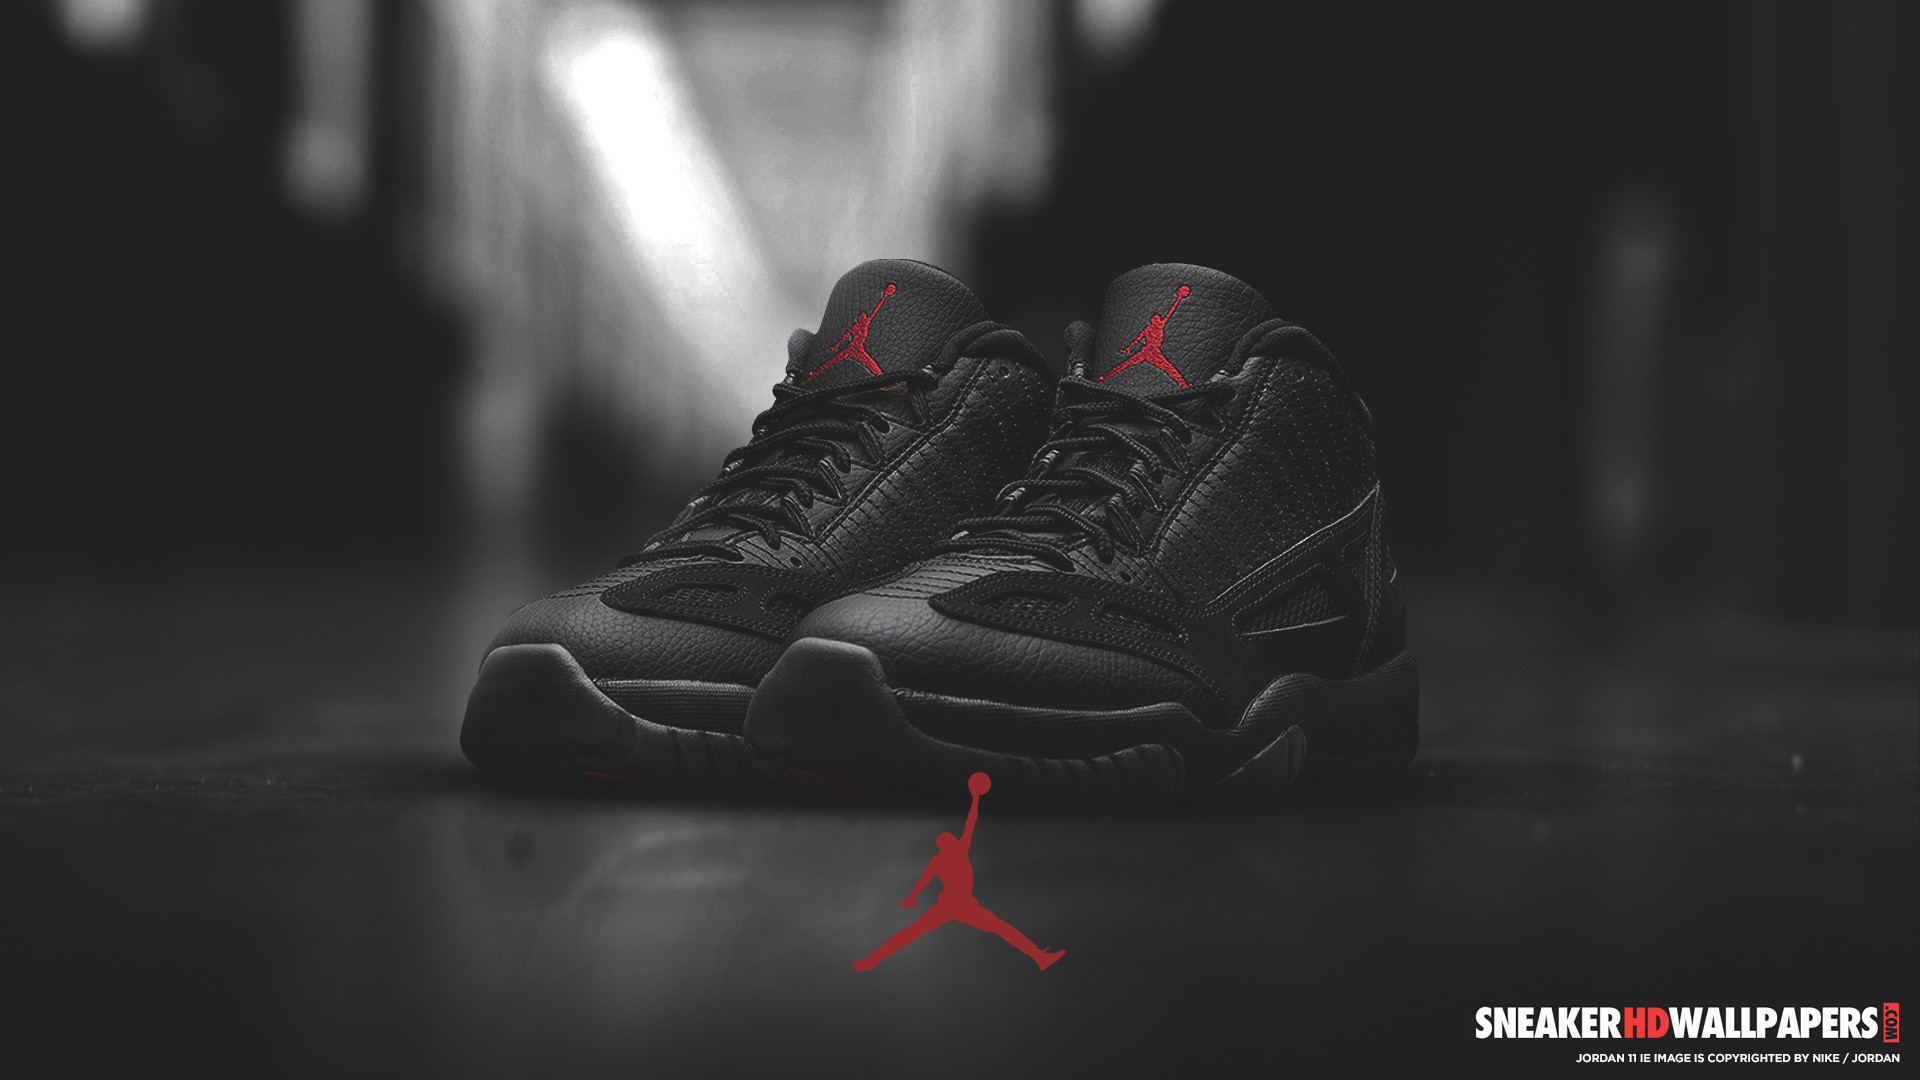 Switzerland Nike Air Jordan Wallpaper 9b643 7d5ee